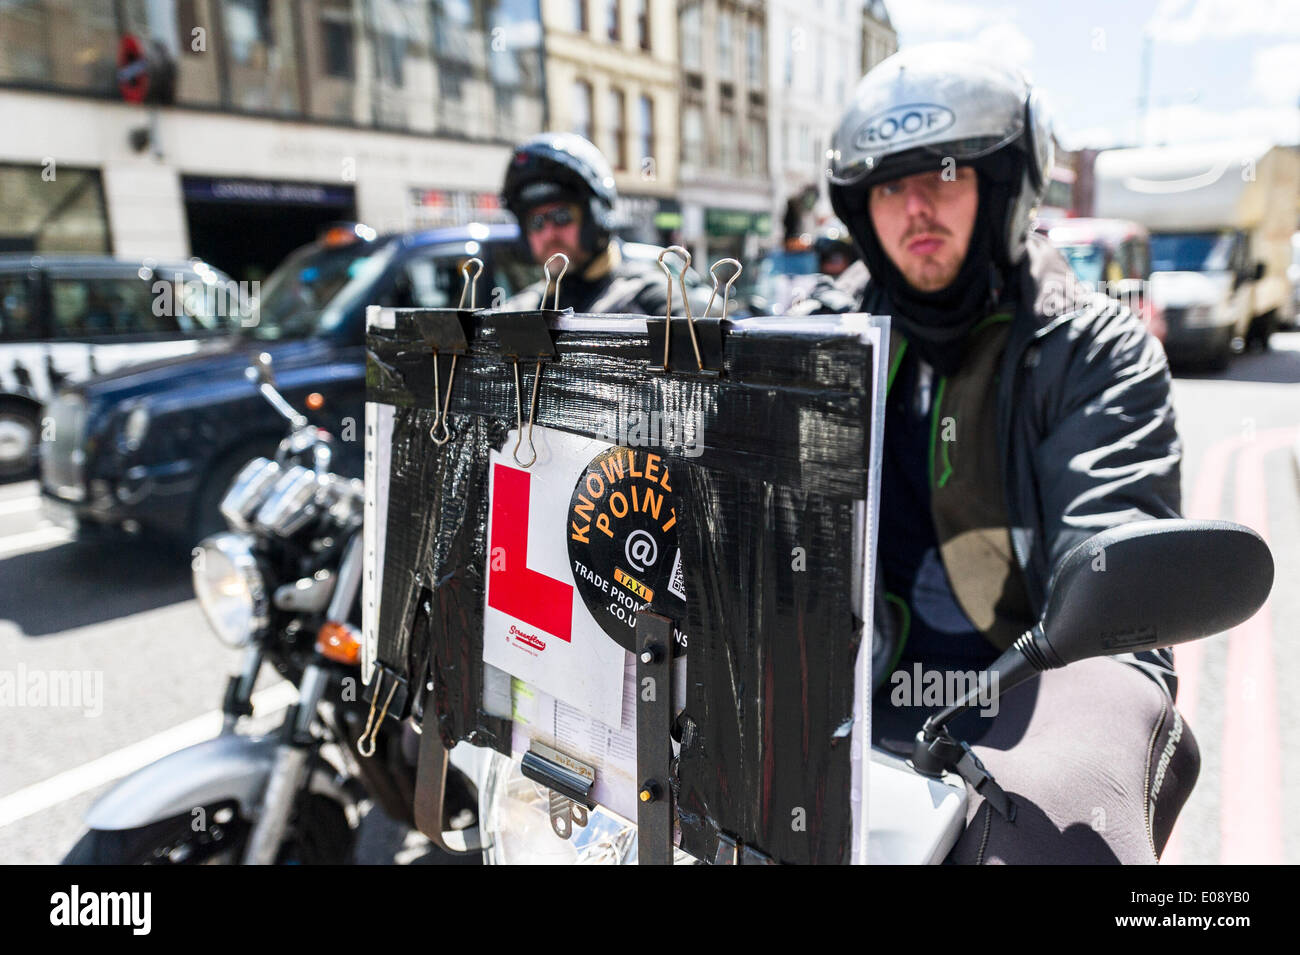 6th May 2014, Trainee Taxi Drivers participate in the demonstration on the streets around The Shard.  Photographer:  Gordon Scammell/Alamy Live News - Stock Image